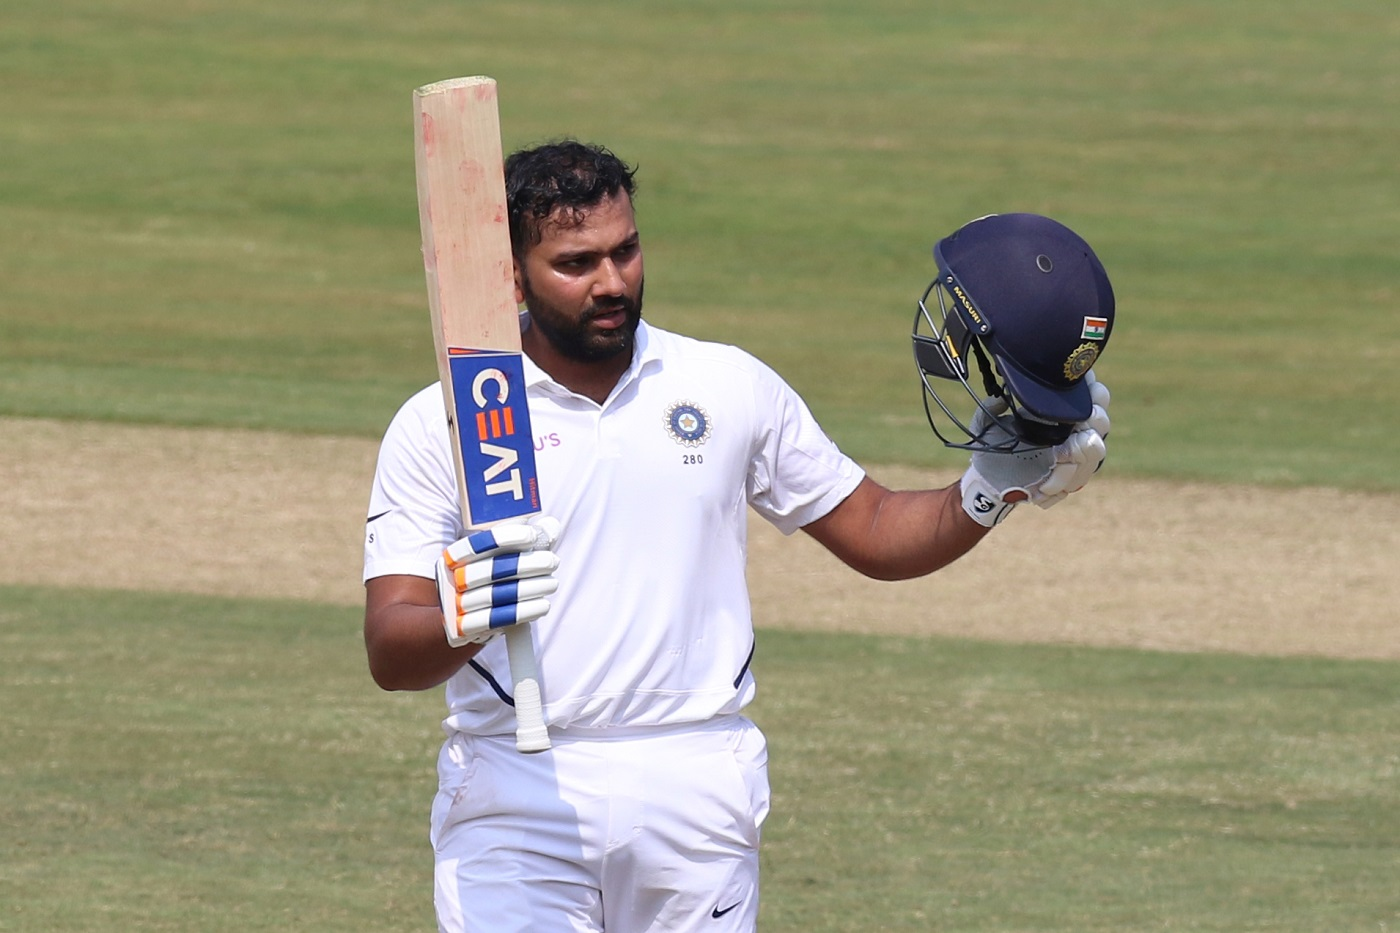 Ian Chappell: Why getting Rohit Sharma to open in Tests is a good move